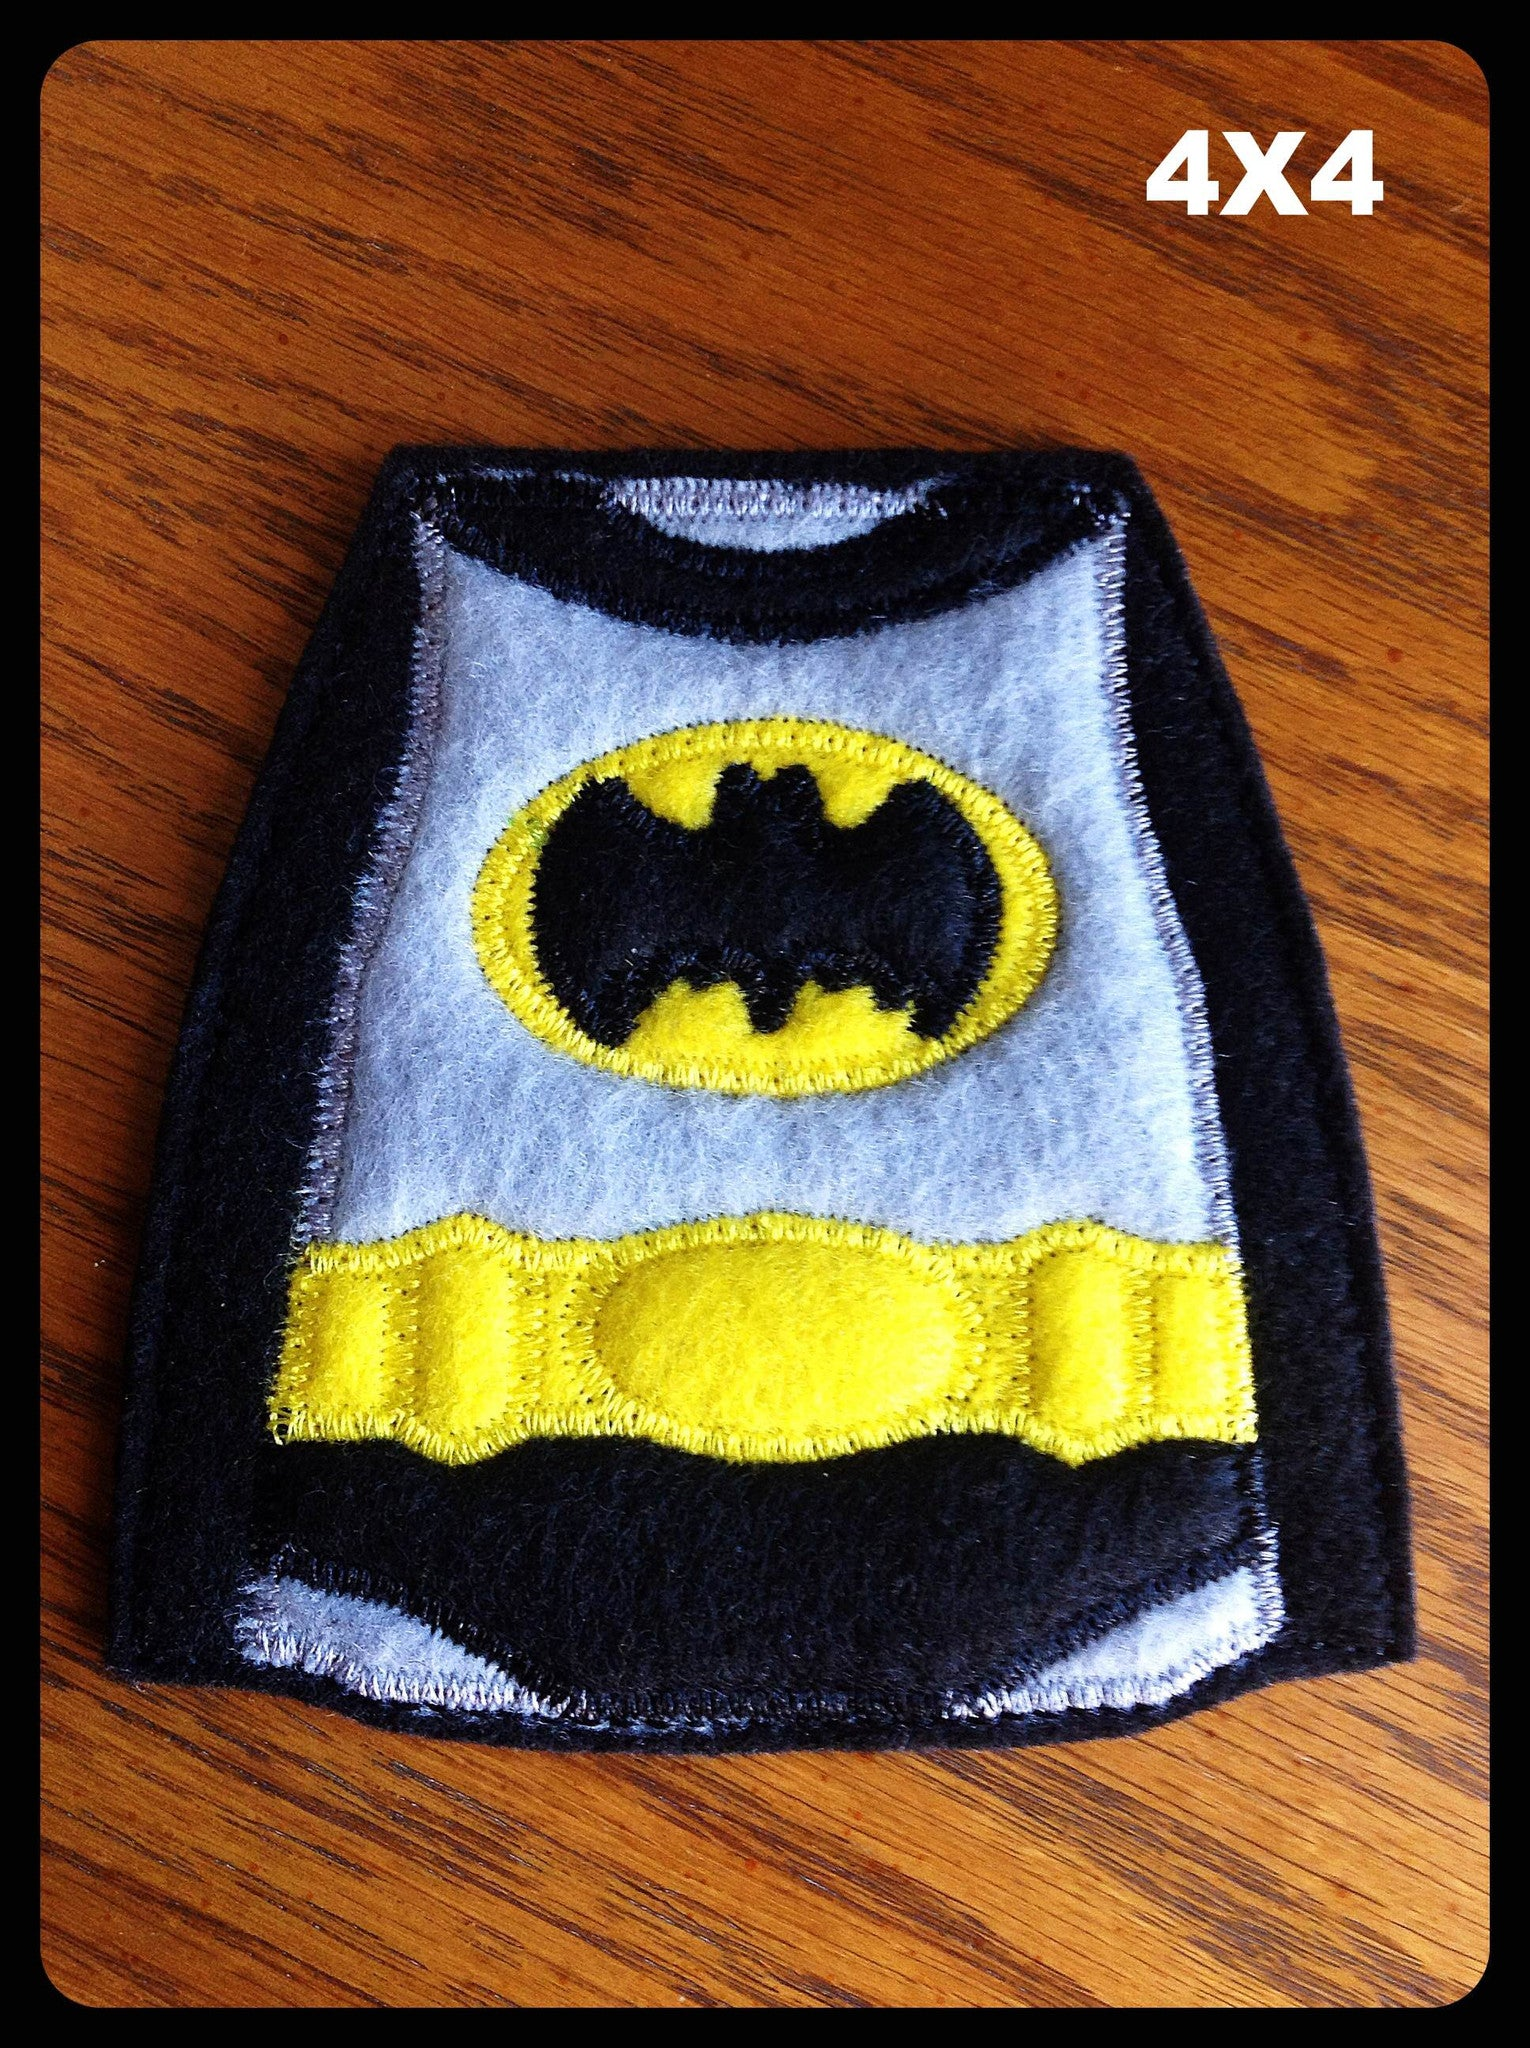 BATMAN MUG RUG PATTERN